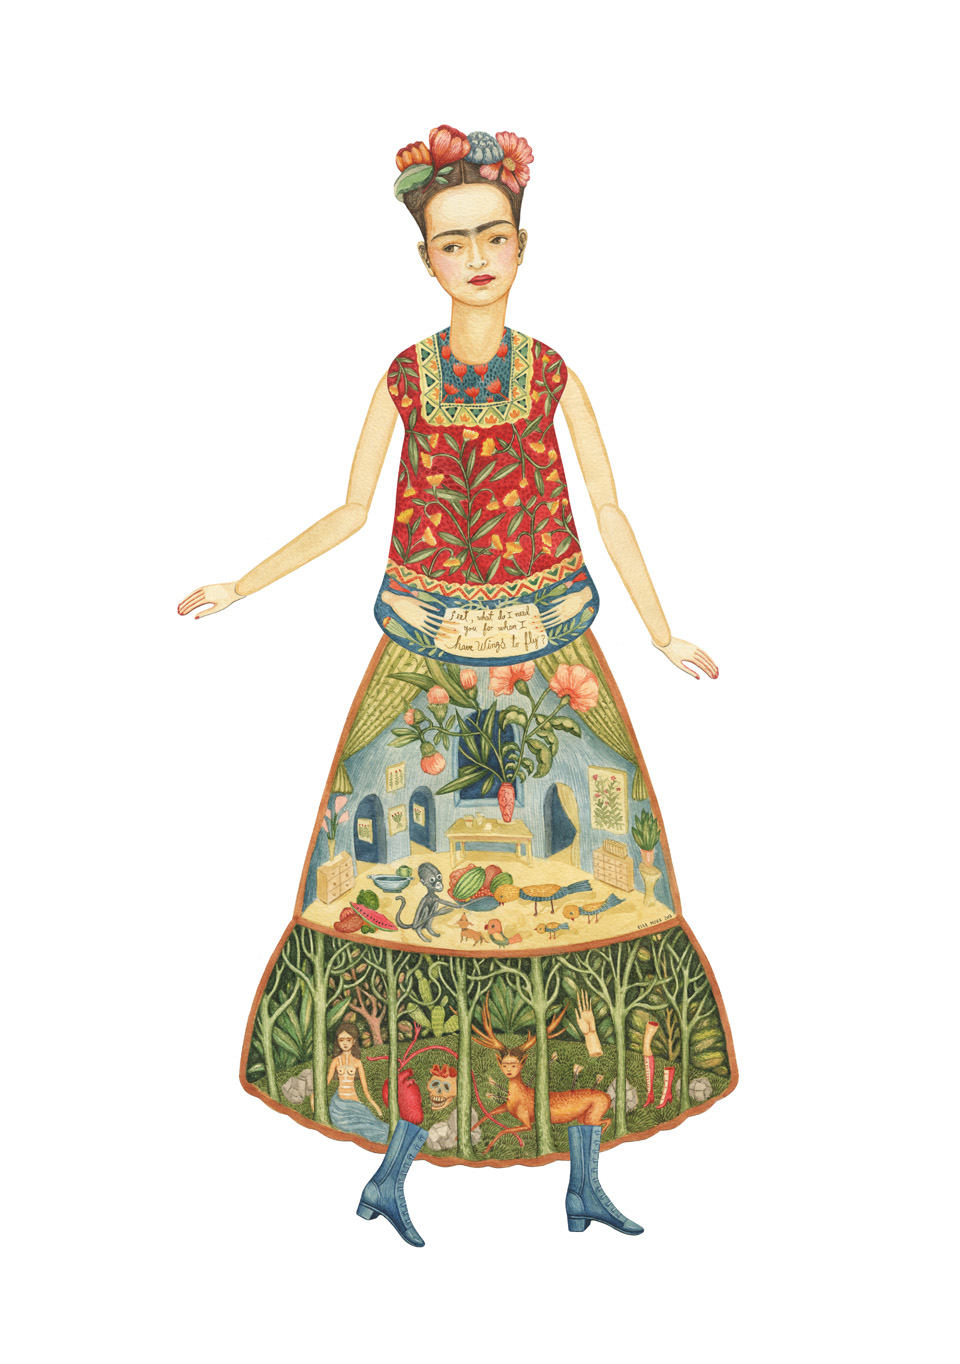 Frida Kahlo by Elsa Mora